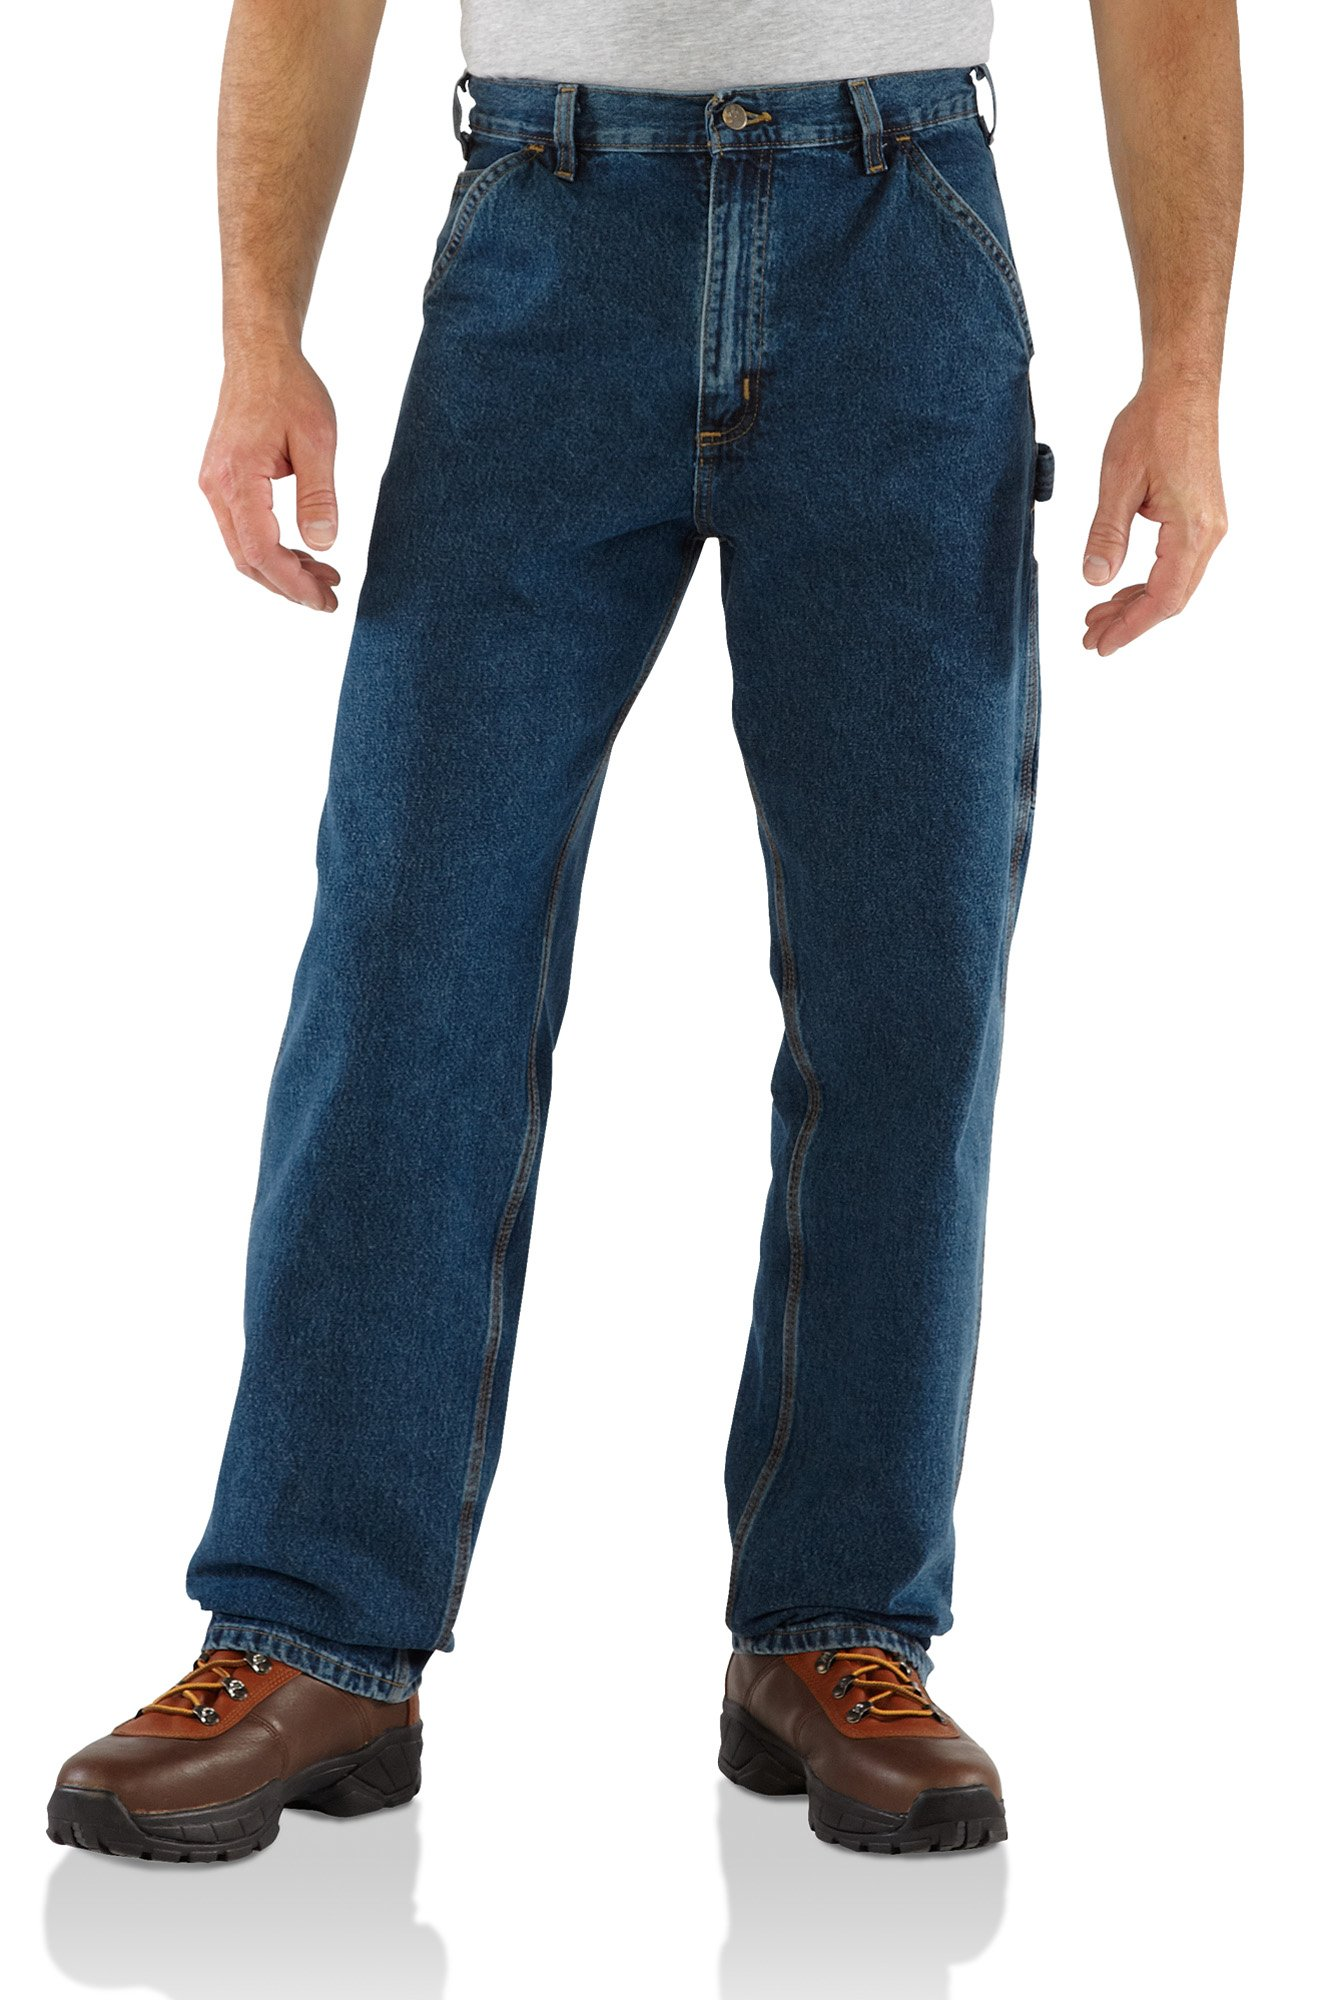 Carhartt Men's Washed Denim Original Fit Work Dungaree B13,Deepstone,46 x 32